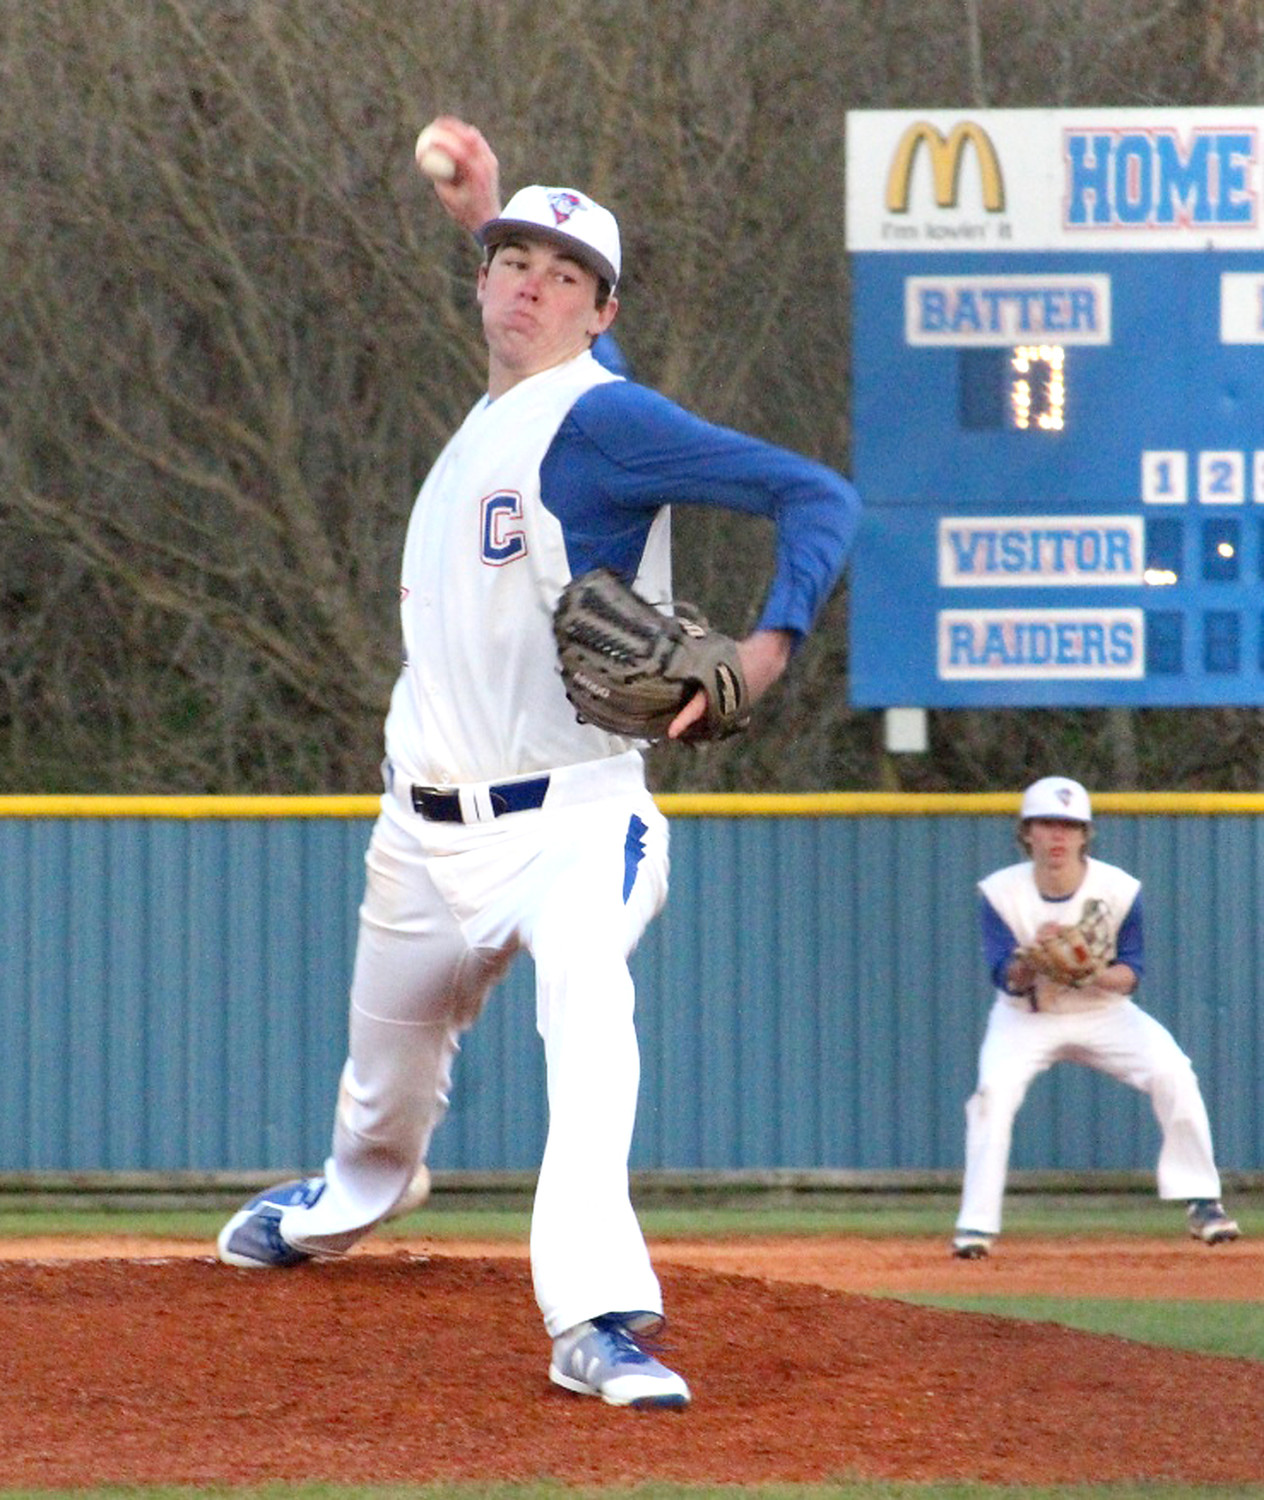 ACE HURLER Camden Sewell tossed a 107-pitch complete-game shutout, and picked up 13 strikeouts in his Opening Day victory Monday over East Hamilton at CHS.